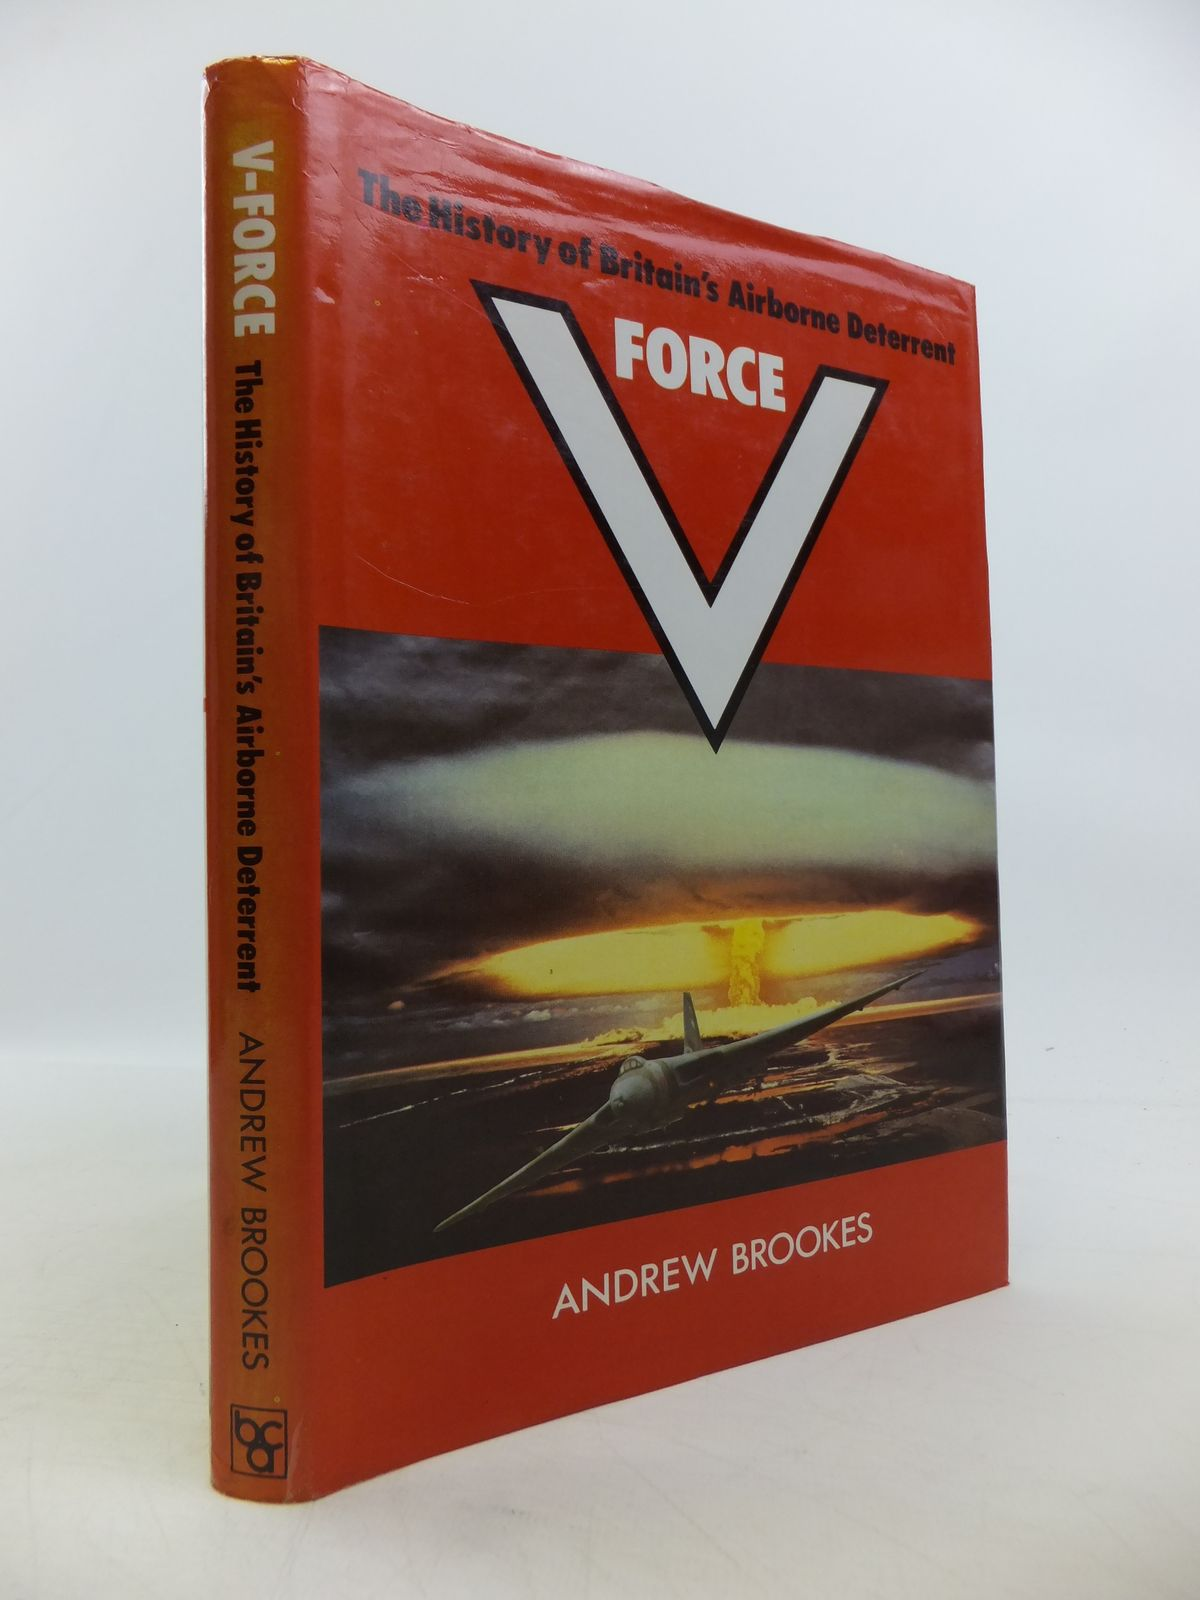 Photo of V FORCE: THE HISTORY OF BRITAIN'S AIRBORNE DETERRENT written by Brookes, Andrew published by Book Club Associates (STOCK CODE: 1811496)  for sale by Stella & Rose's Books